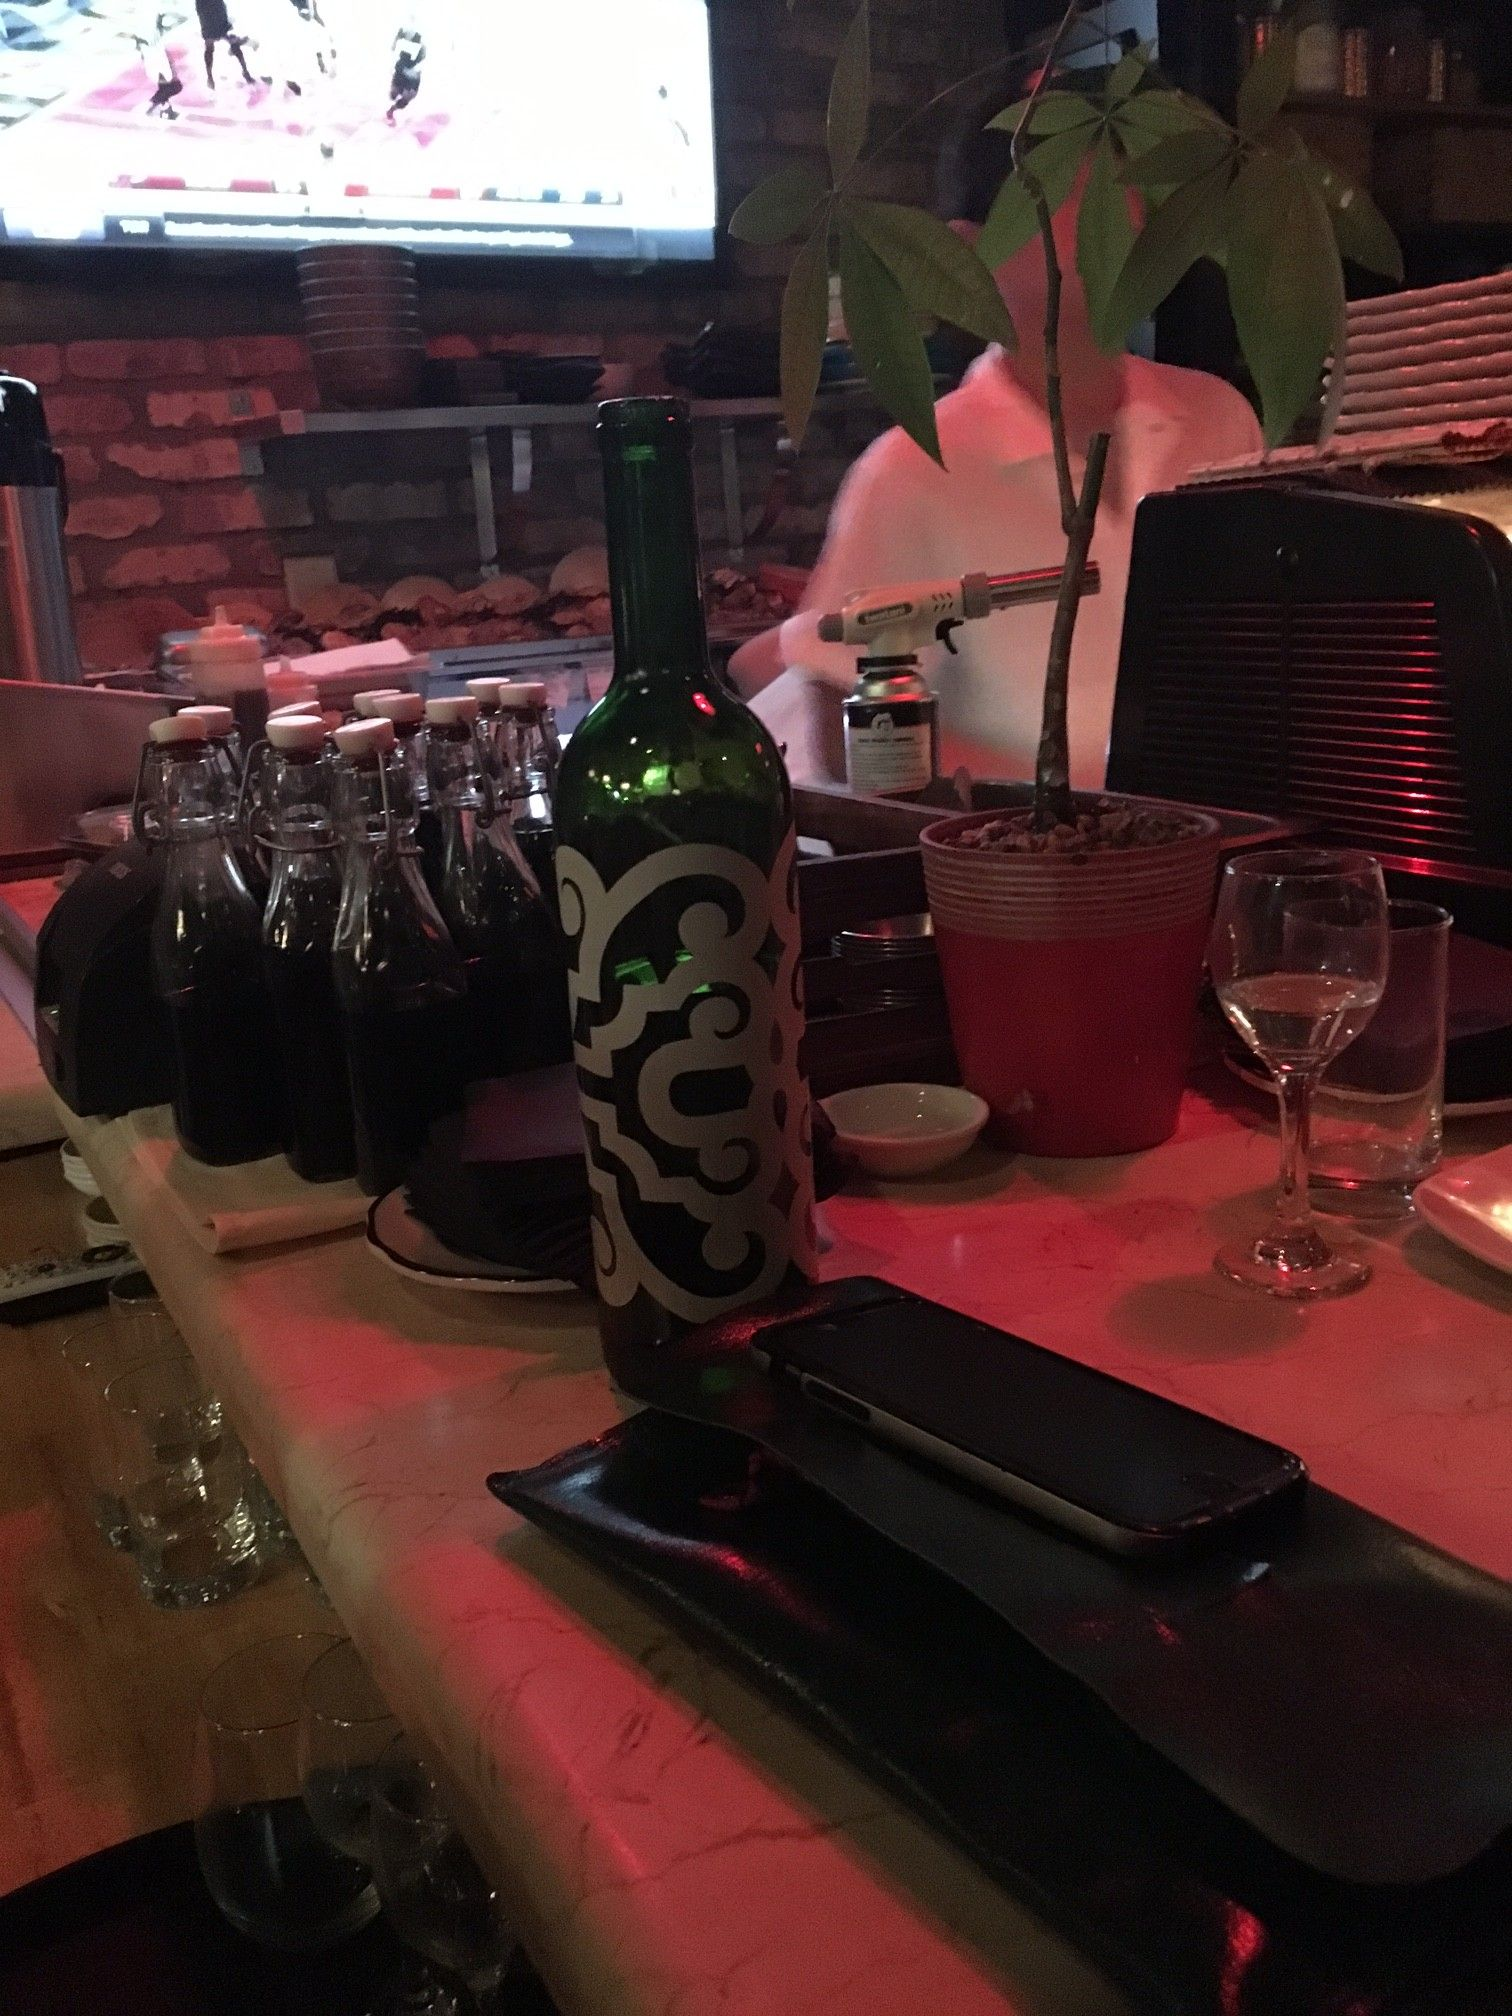 Check It Out Pub Belly Sushi In Miami Uses Protea Bottles As Repurposed Water Bottles What A Great Idea Protea Diy Cork Ornaments Paisley Pattern Bottle